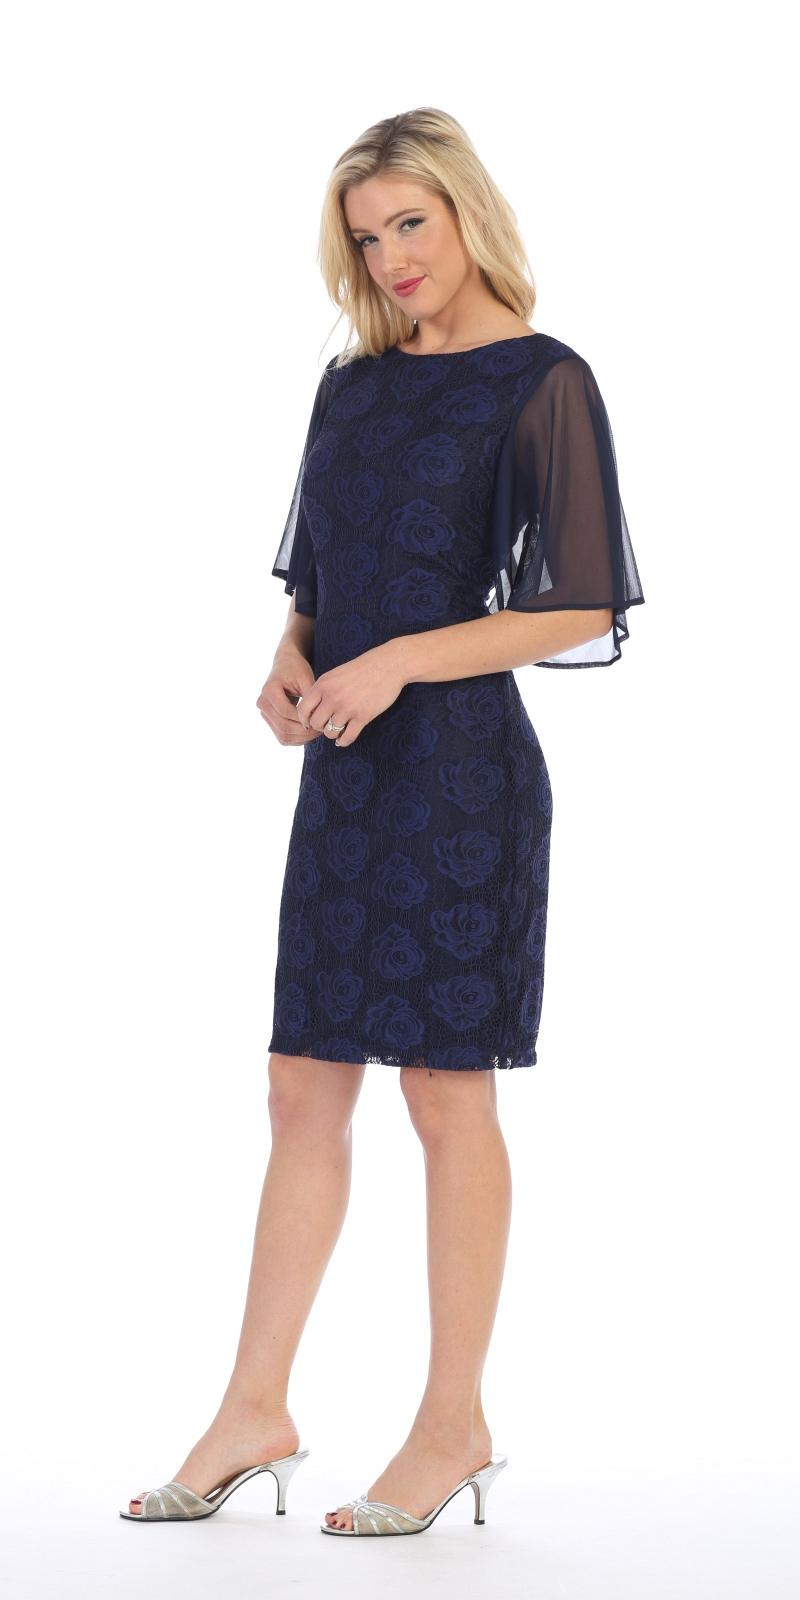 Celavie 6289 Sheer Flutter Sleeves Wedding Guest Dress Navy Blue